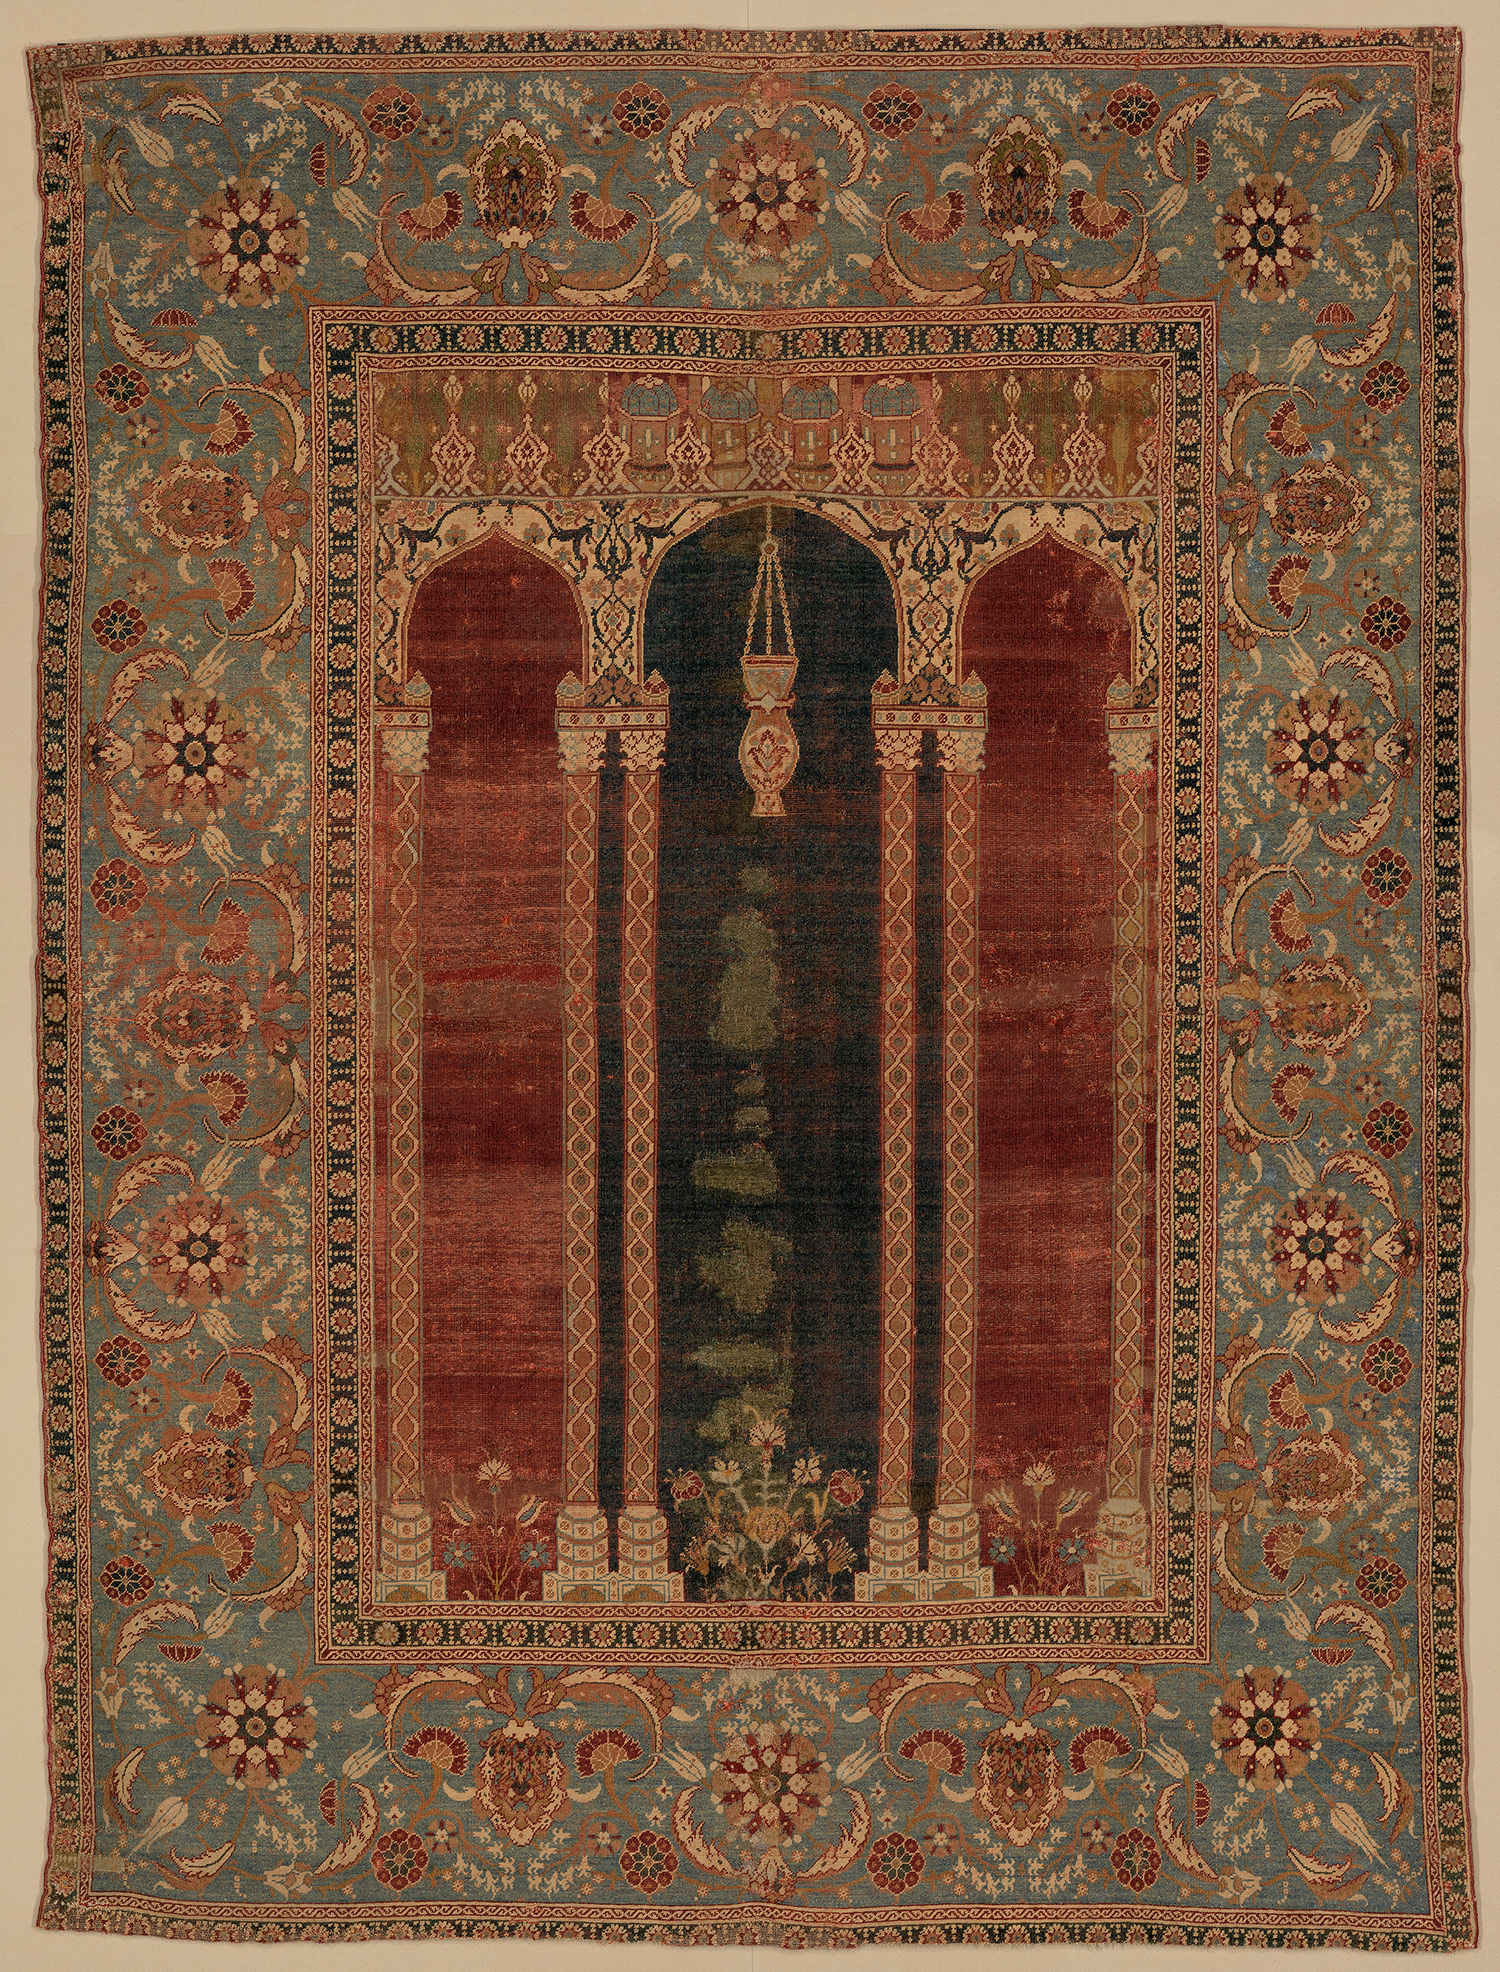 ottoman empire and the european nations influence essay An empire arose in the steppes of mongolia in the thirteenth century that forever changed the map of the world, opened intercontinental trade, spawned new nations, changed the course of leadership in two religions, and impacted history indirectly in a myriad of other ways.